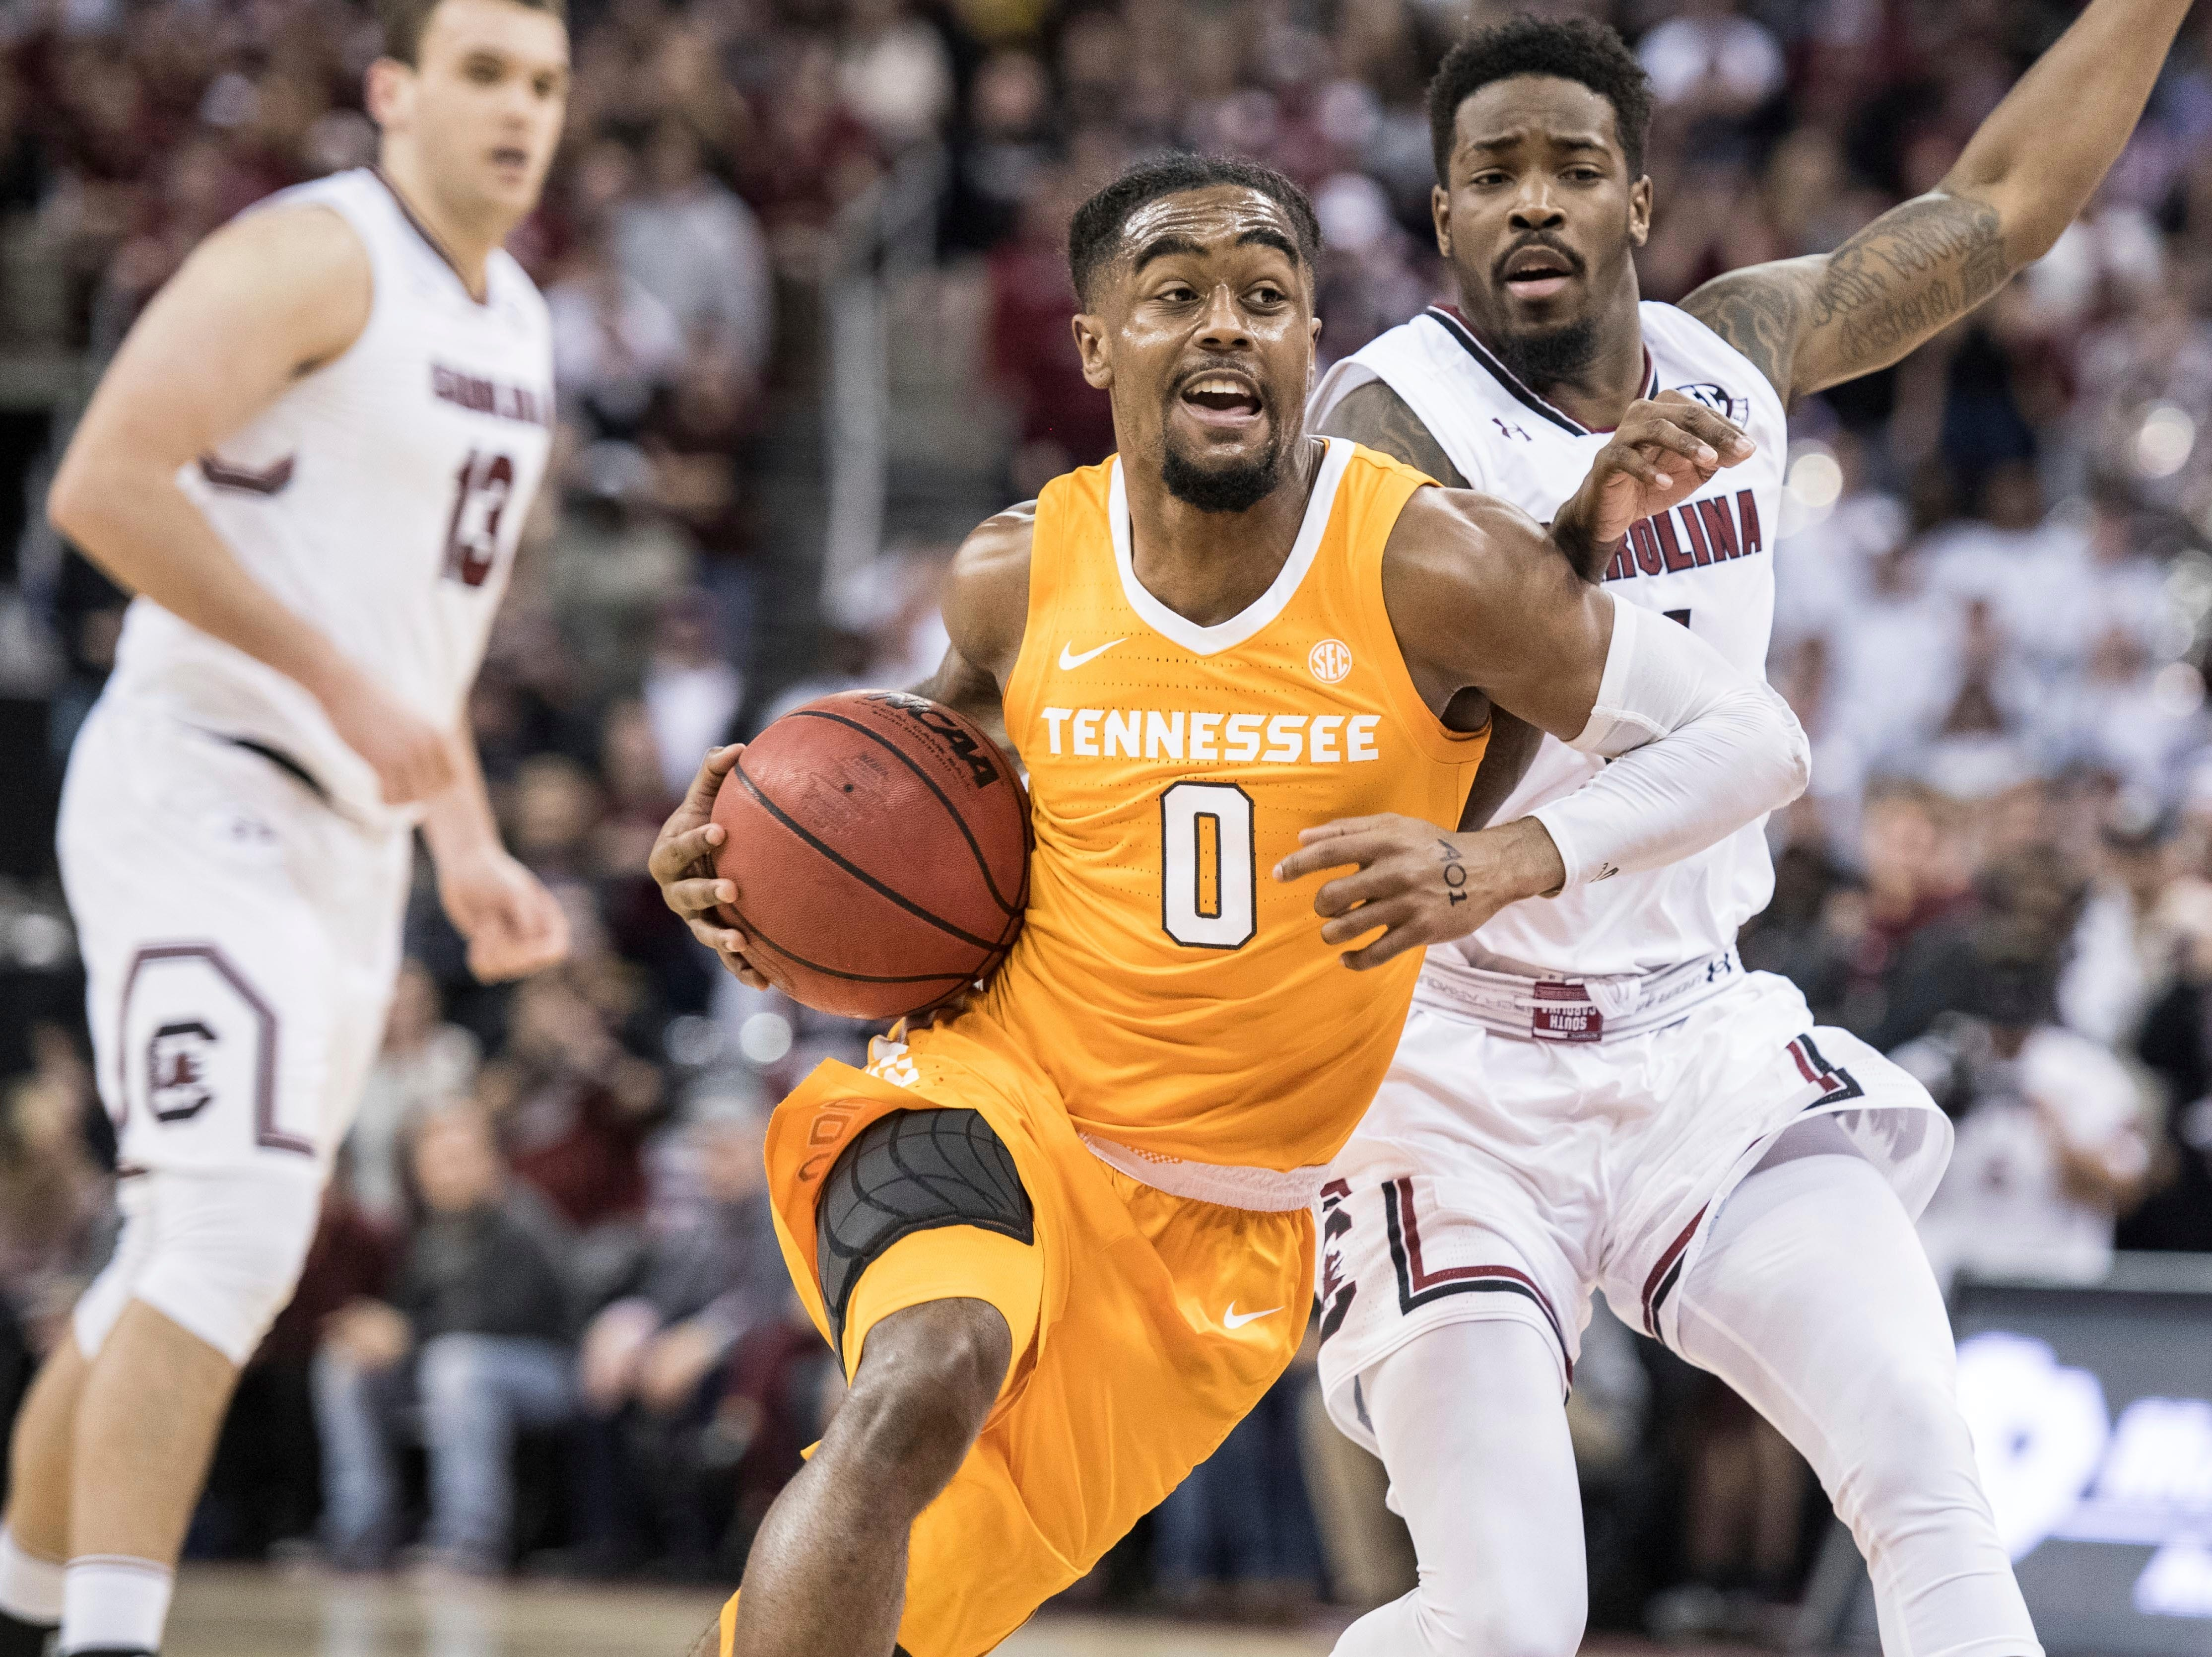 Tennessee guard Jordan Bone (0) drives to the hoop against South Carolina guard Tre Campbell during the first half of an NCAA college basketball game Tuesday, Jan. 29, 2019, in Columbia, S.C. (AP Photo/Sean Rayford)